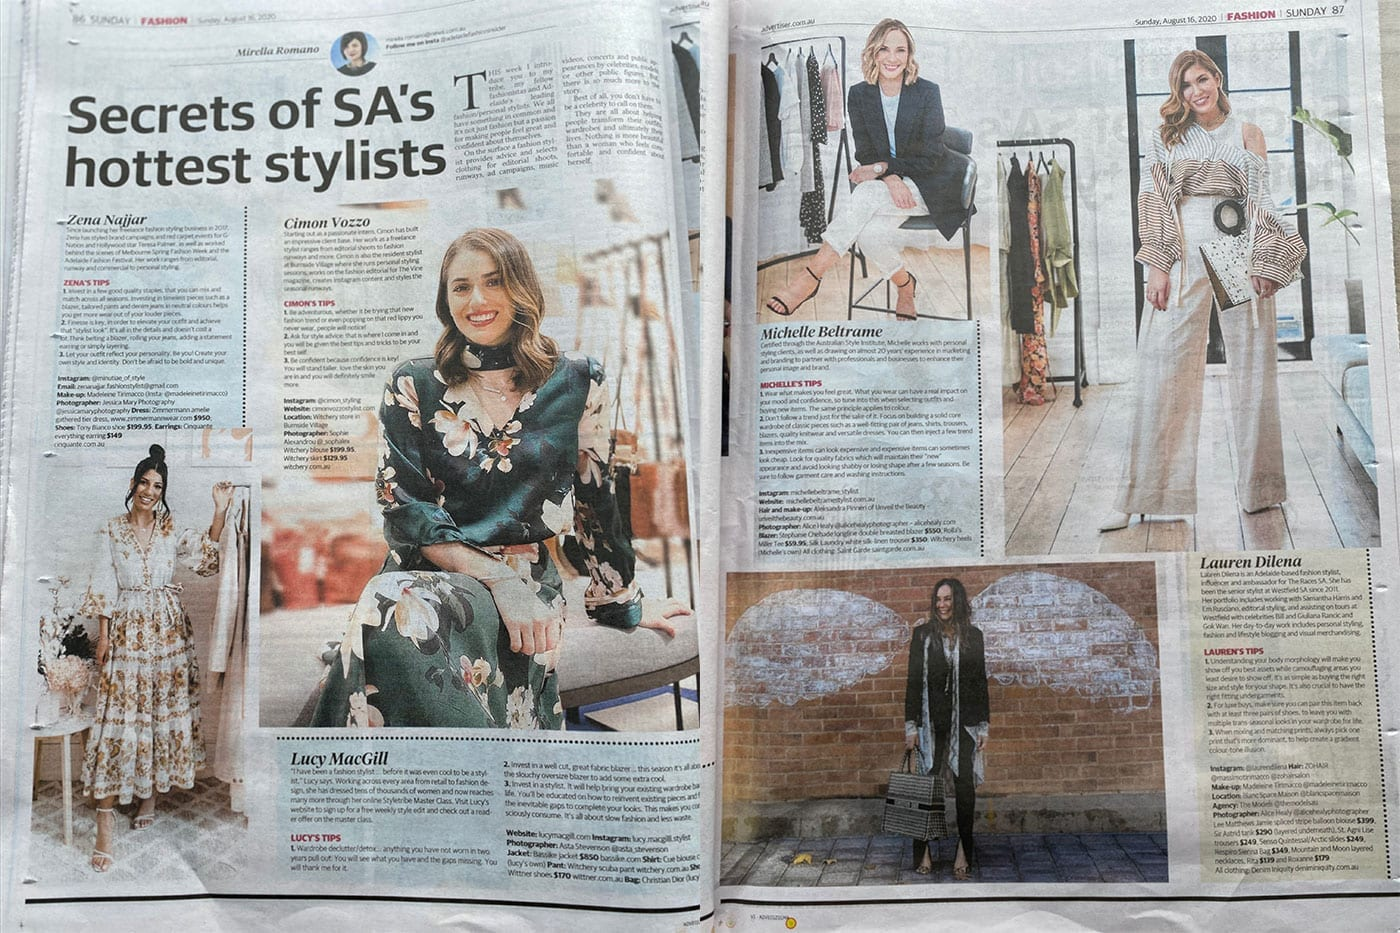 Sunday Mail Secrets of SA's Hottest Stylists